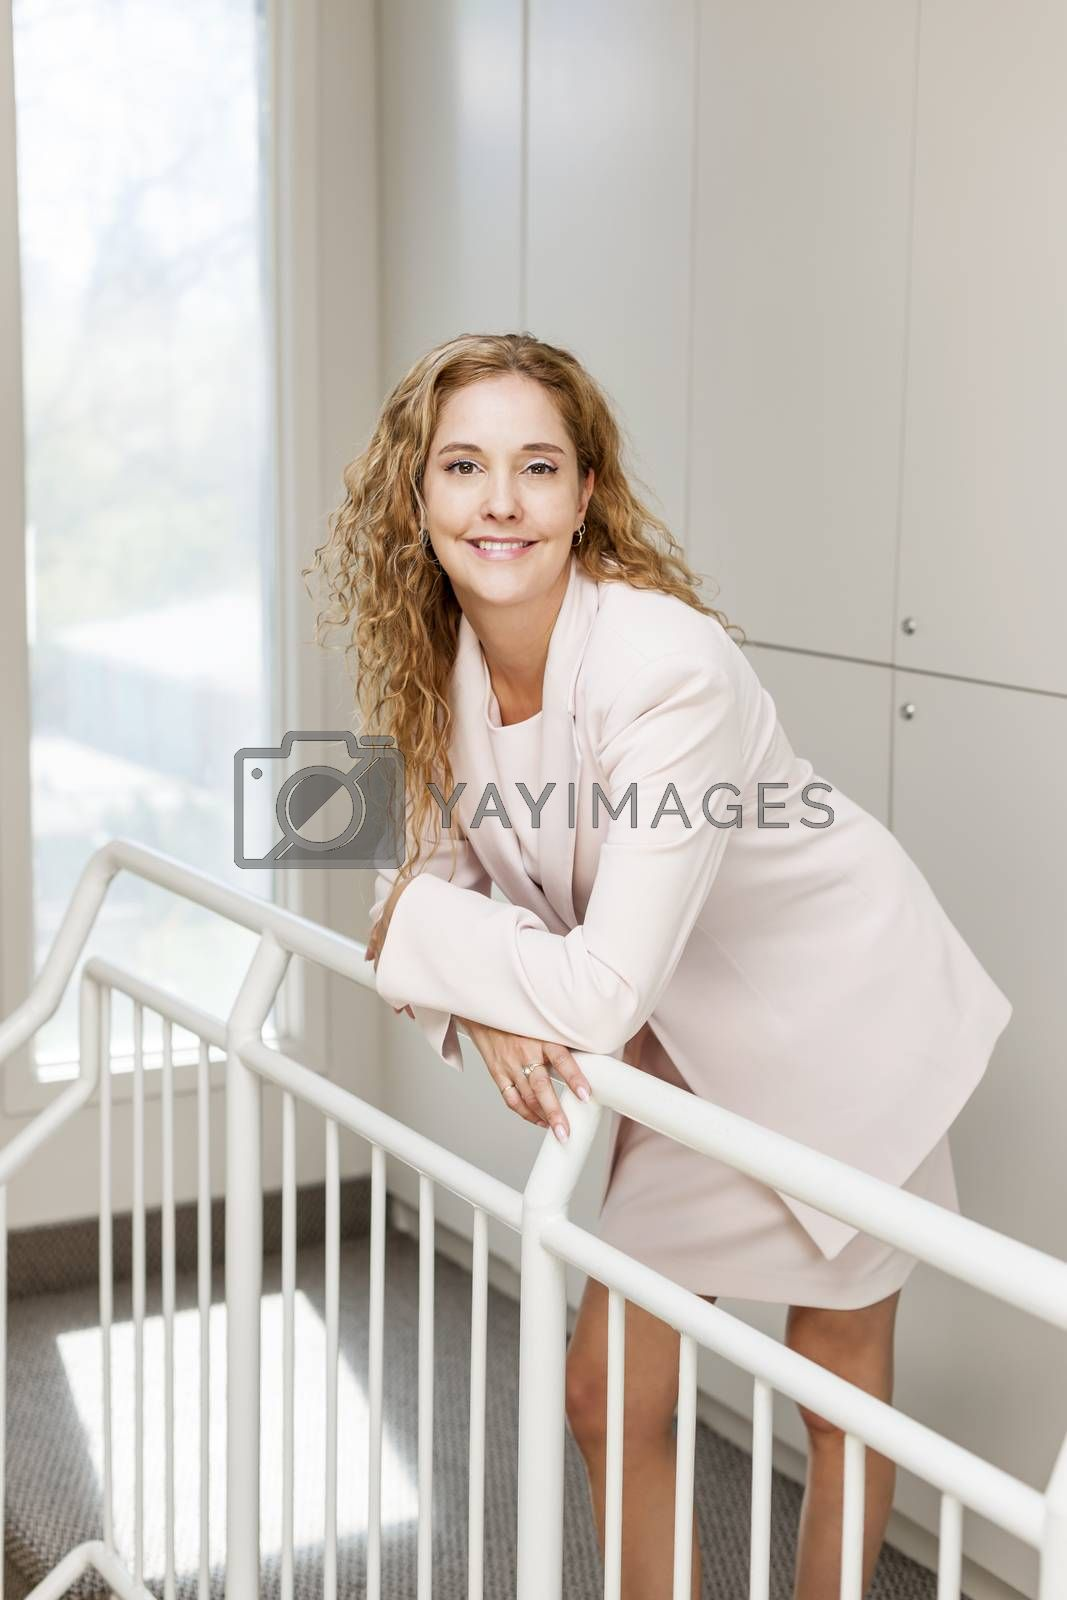 Smiling proud business woman standing in office hallway leaning on railing